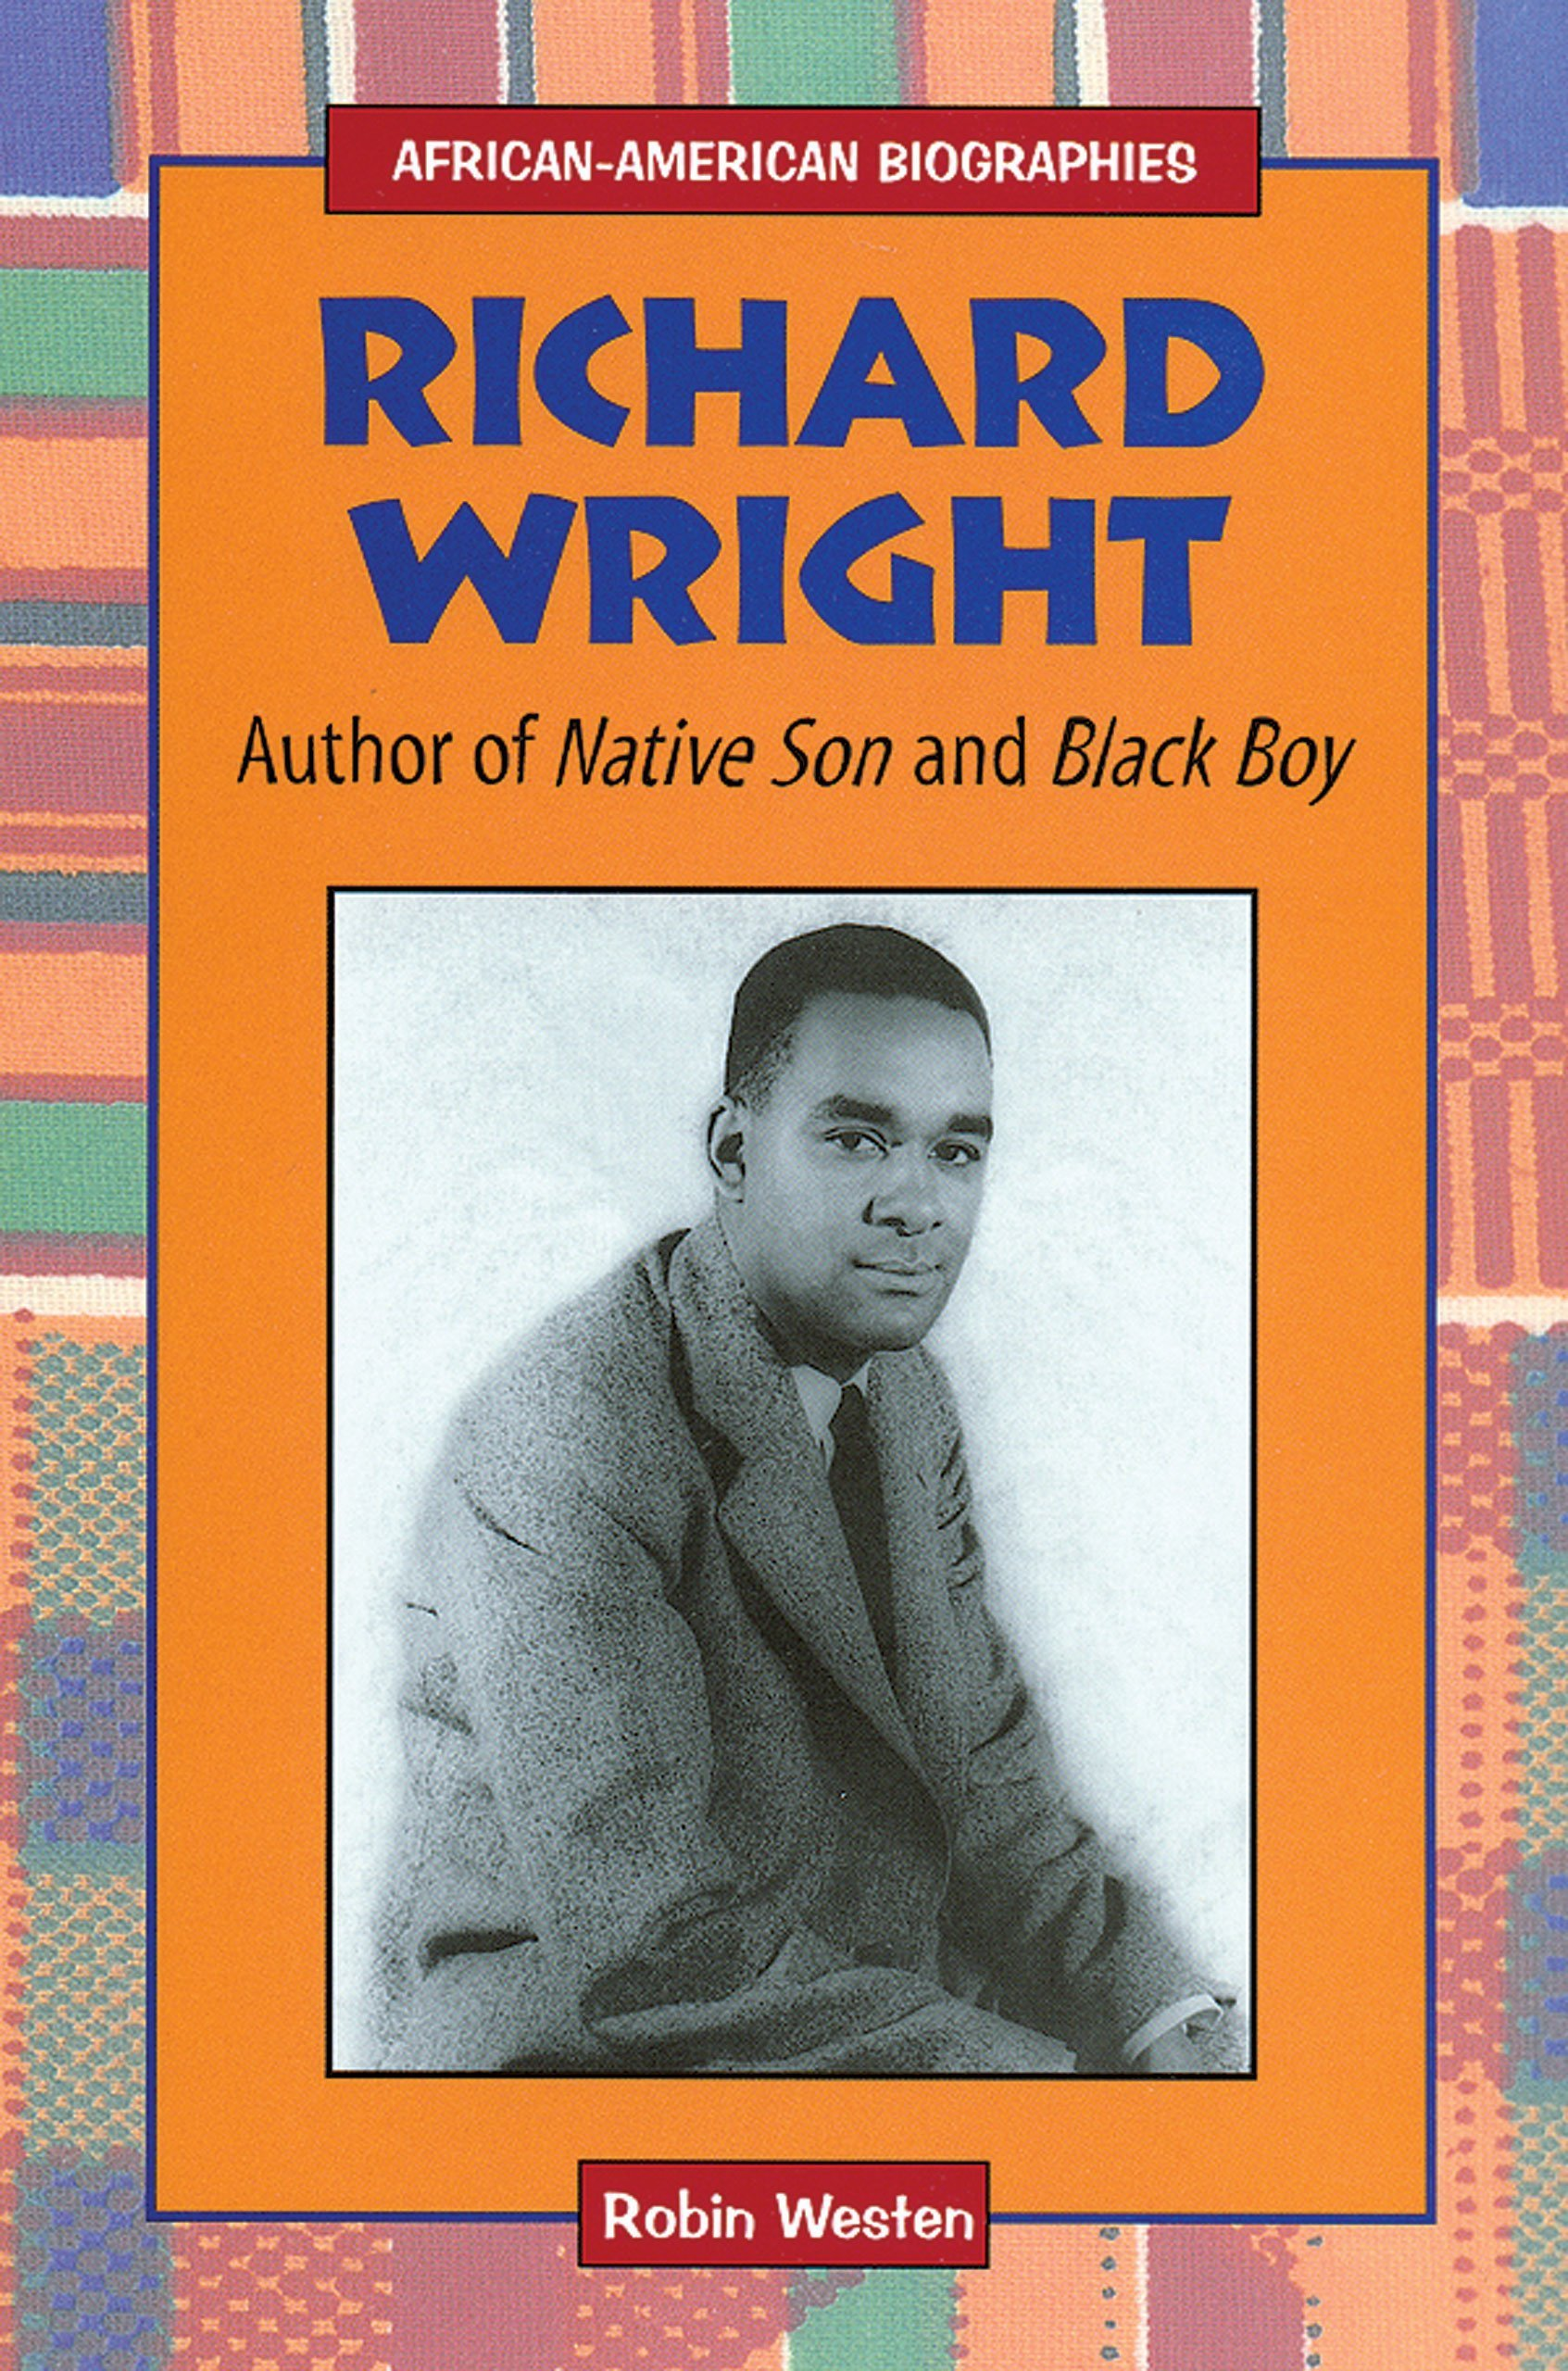 Amazon richard wright author of native son and black boy amazon richard wright author of native son and black boy african american biographies 9780766017696 robin westen books fandeluxe Choice Image